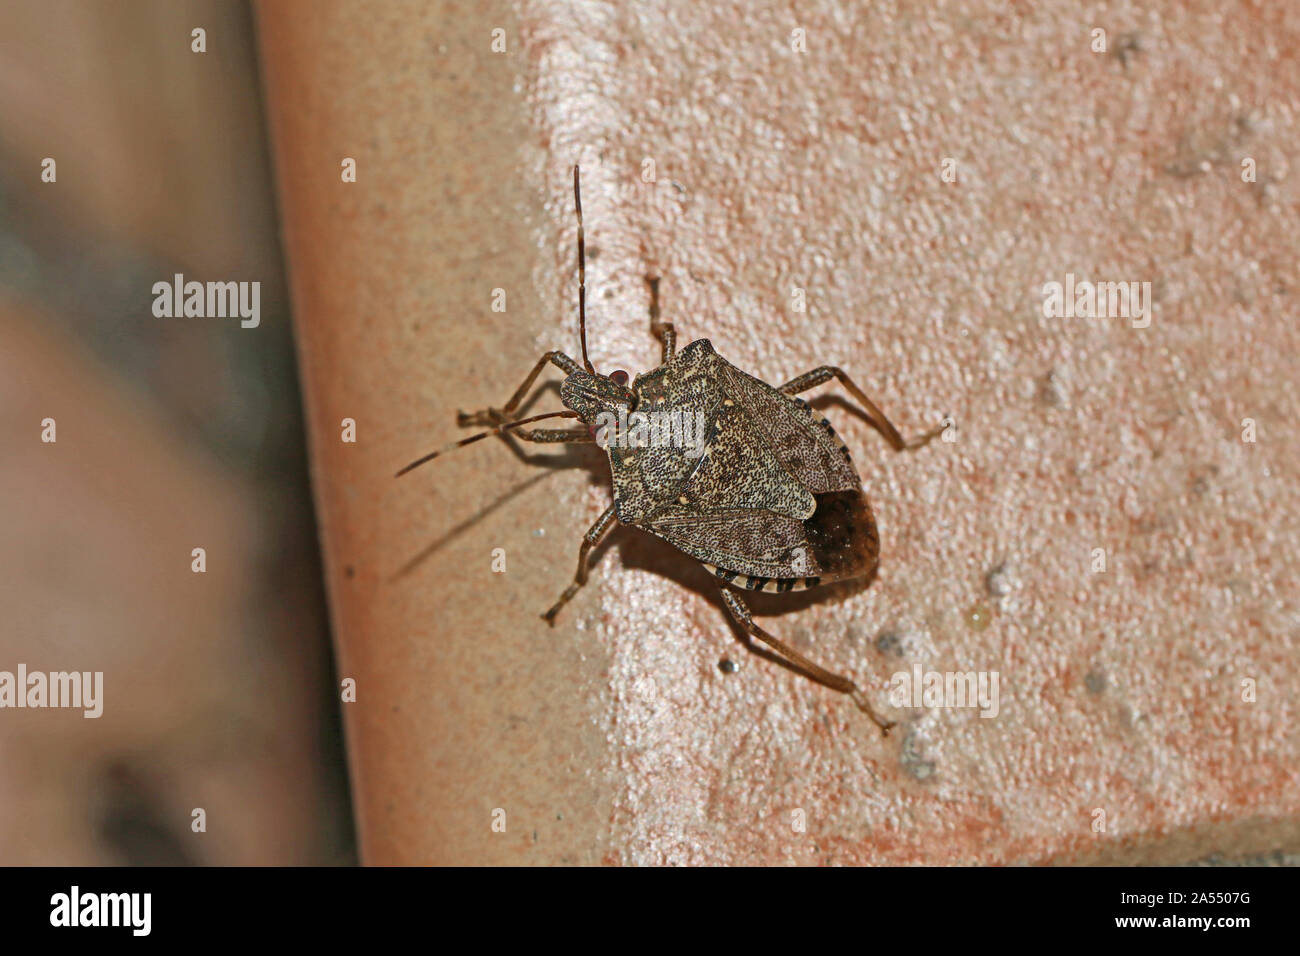 brown marmorated stink bug or shield bug Latin halyomorpha halys from the pentatomidae family native to China and Asia a serious pest in Italy and USA Stock Photo